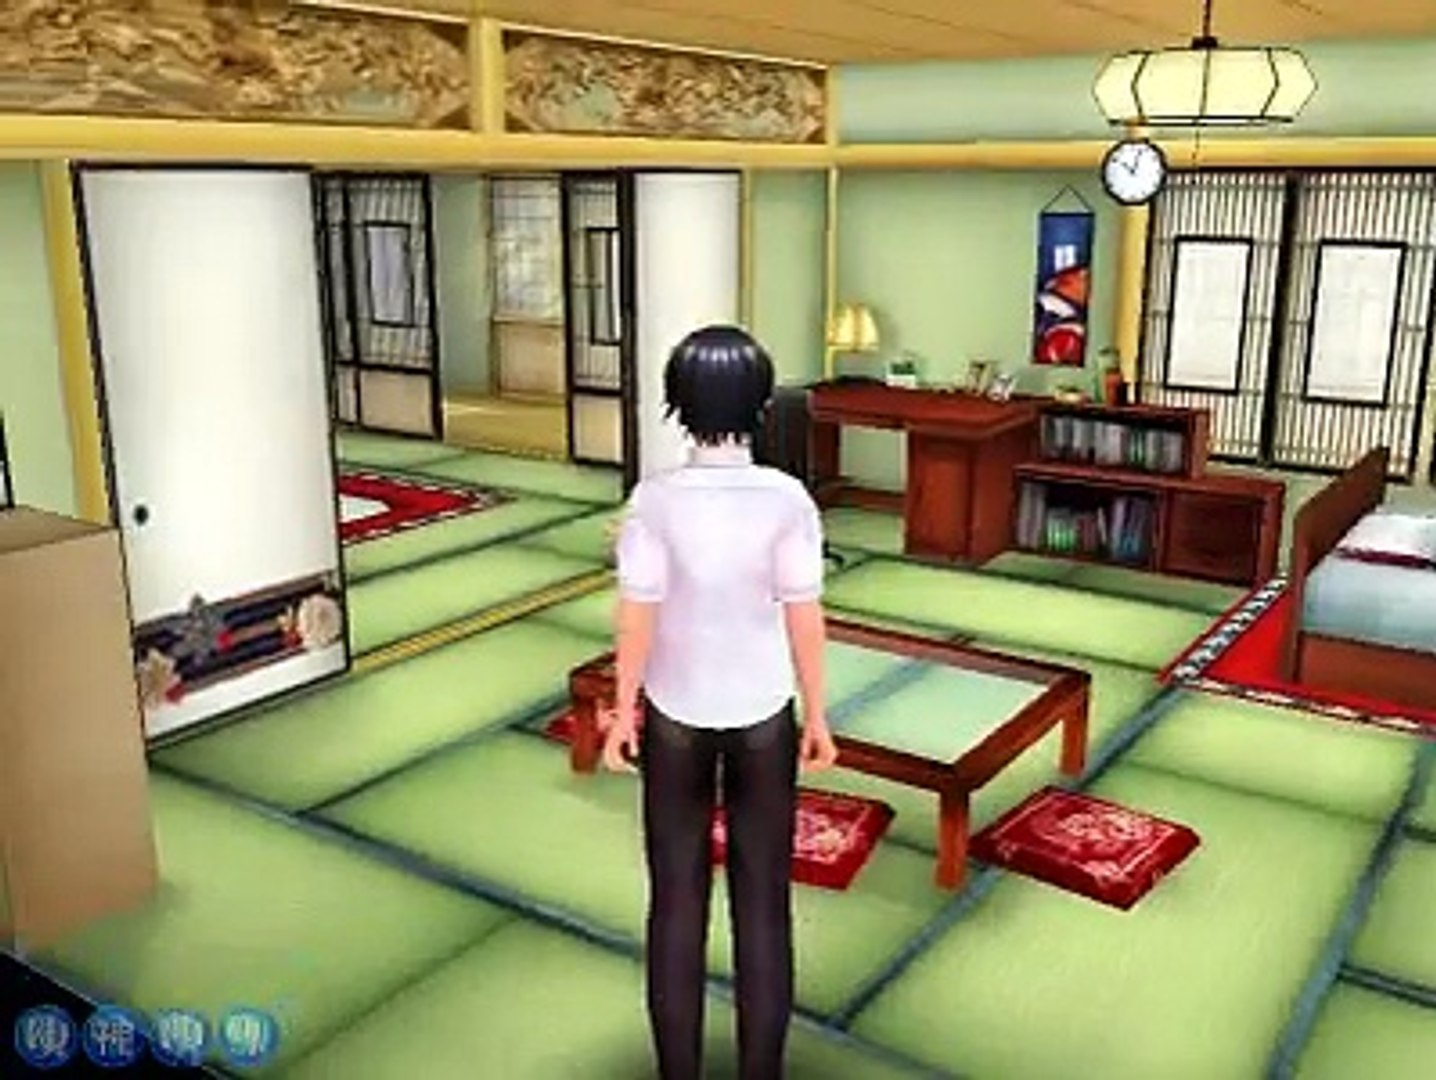 100 Images of Artificial Girl 3 Pc Game Free Download